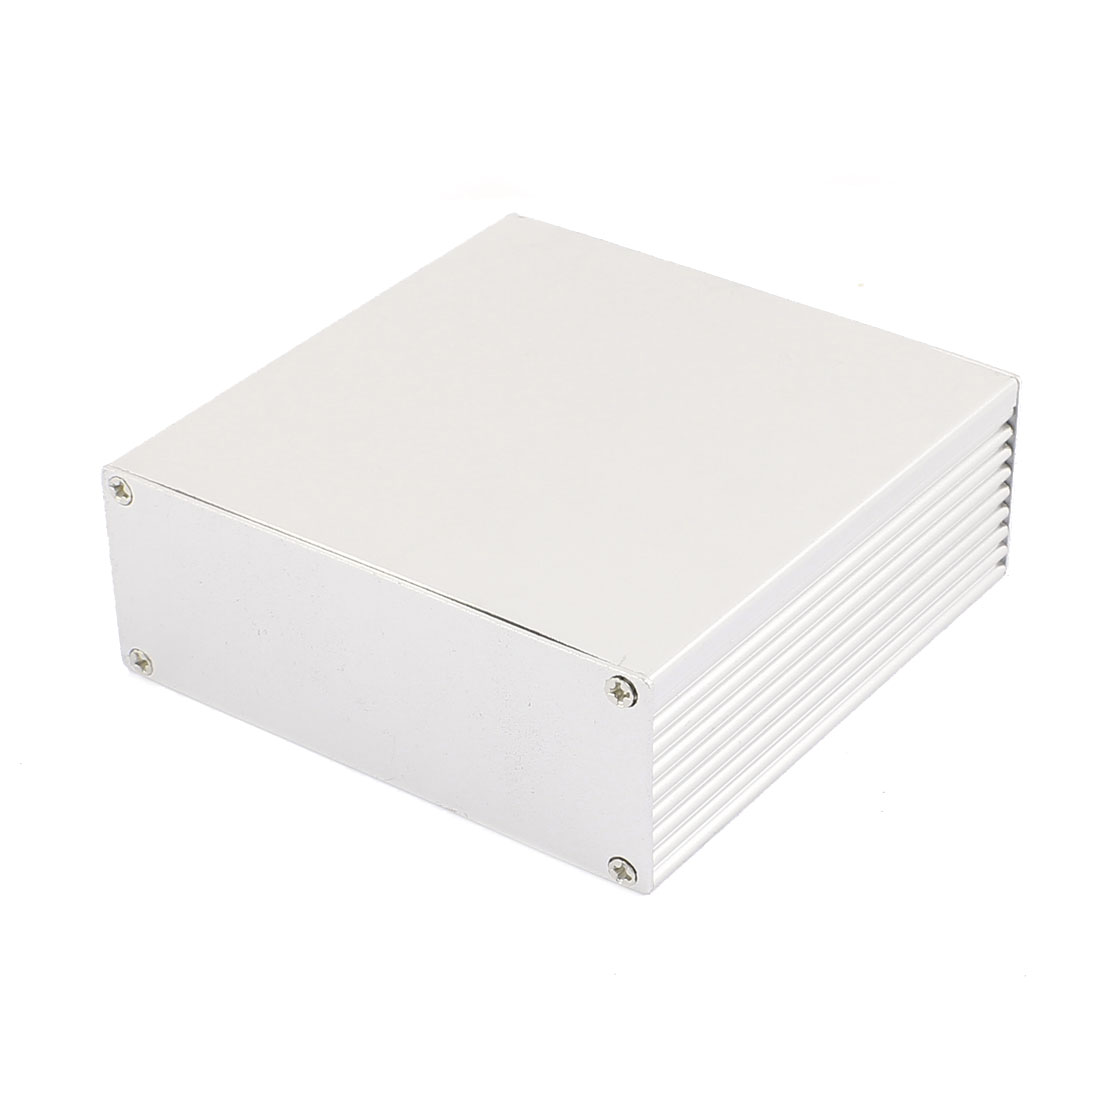 113 x 110 x 40mm Multi-purpose Electronic Extruded Aluminum Enclosure Silver Tone